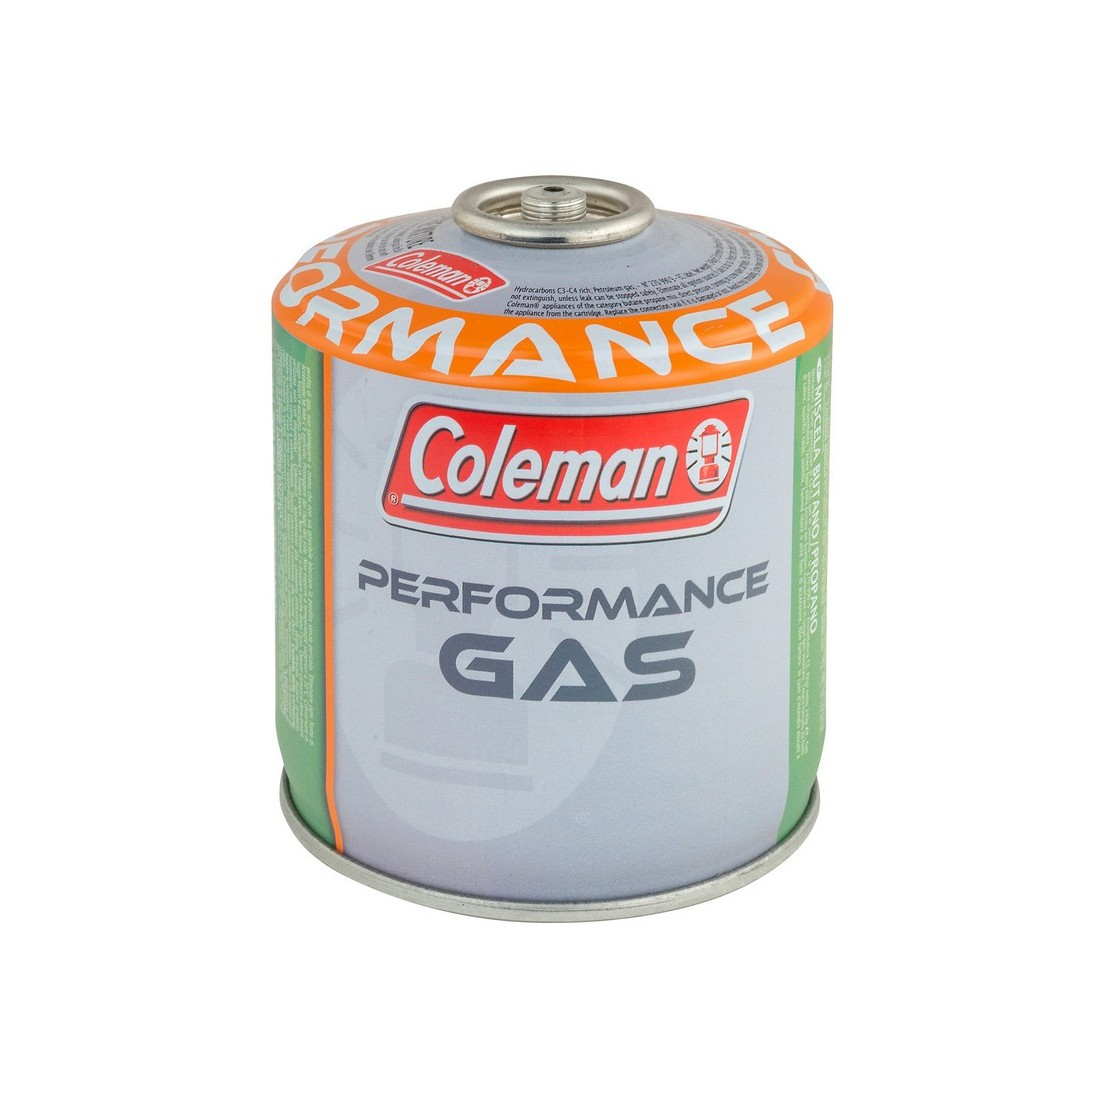 Bombola gas Coleman C300 240 gr per ThermaCELL Backpacker